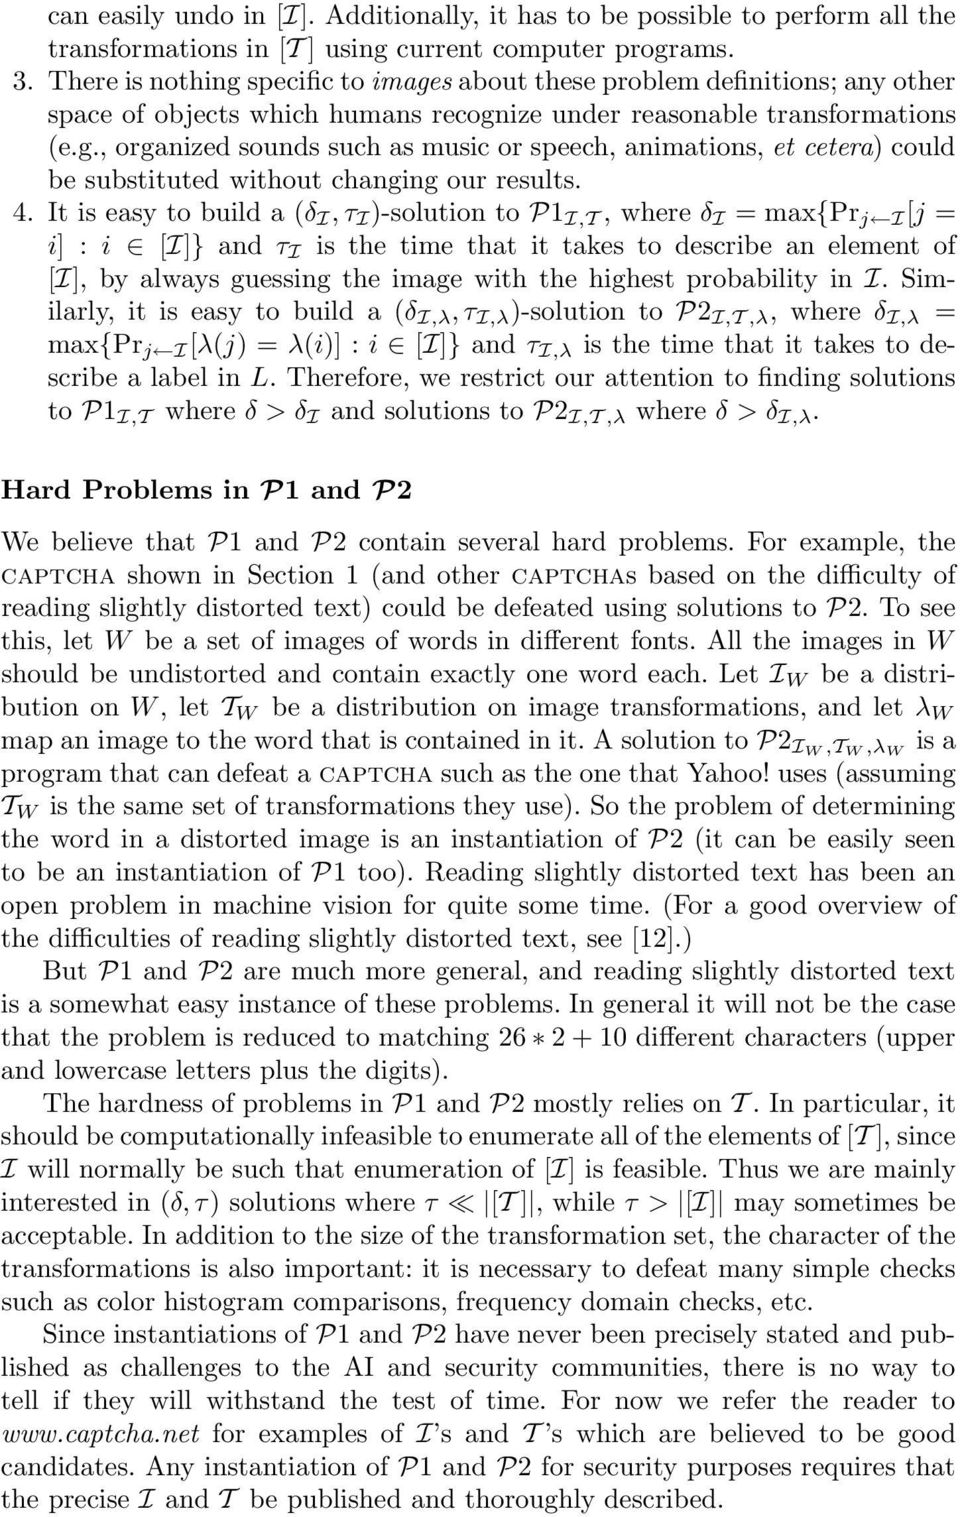 4. It is easy to build a (δ I, τ I )-solution to P1 I,T, where δ I = max{pr j I [j = i] : i [I]} and τ I is the time that it takes to describe an element of [I], by always guessing the image with the